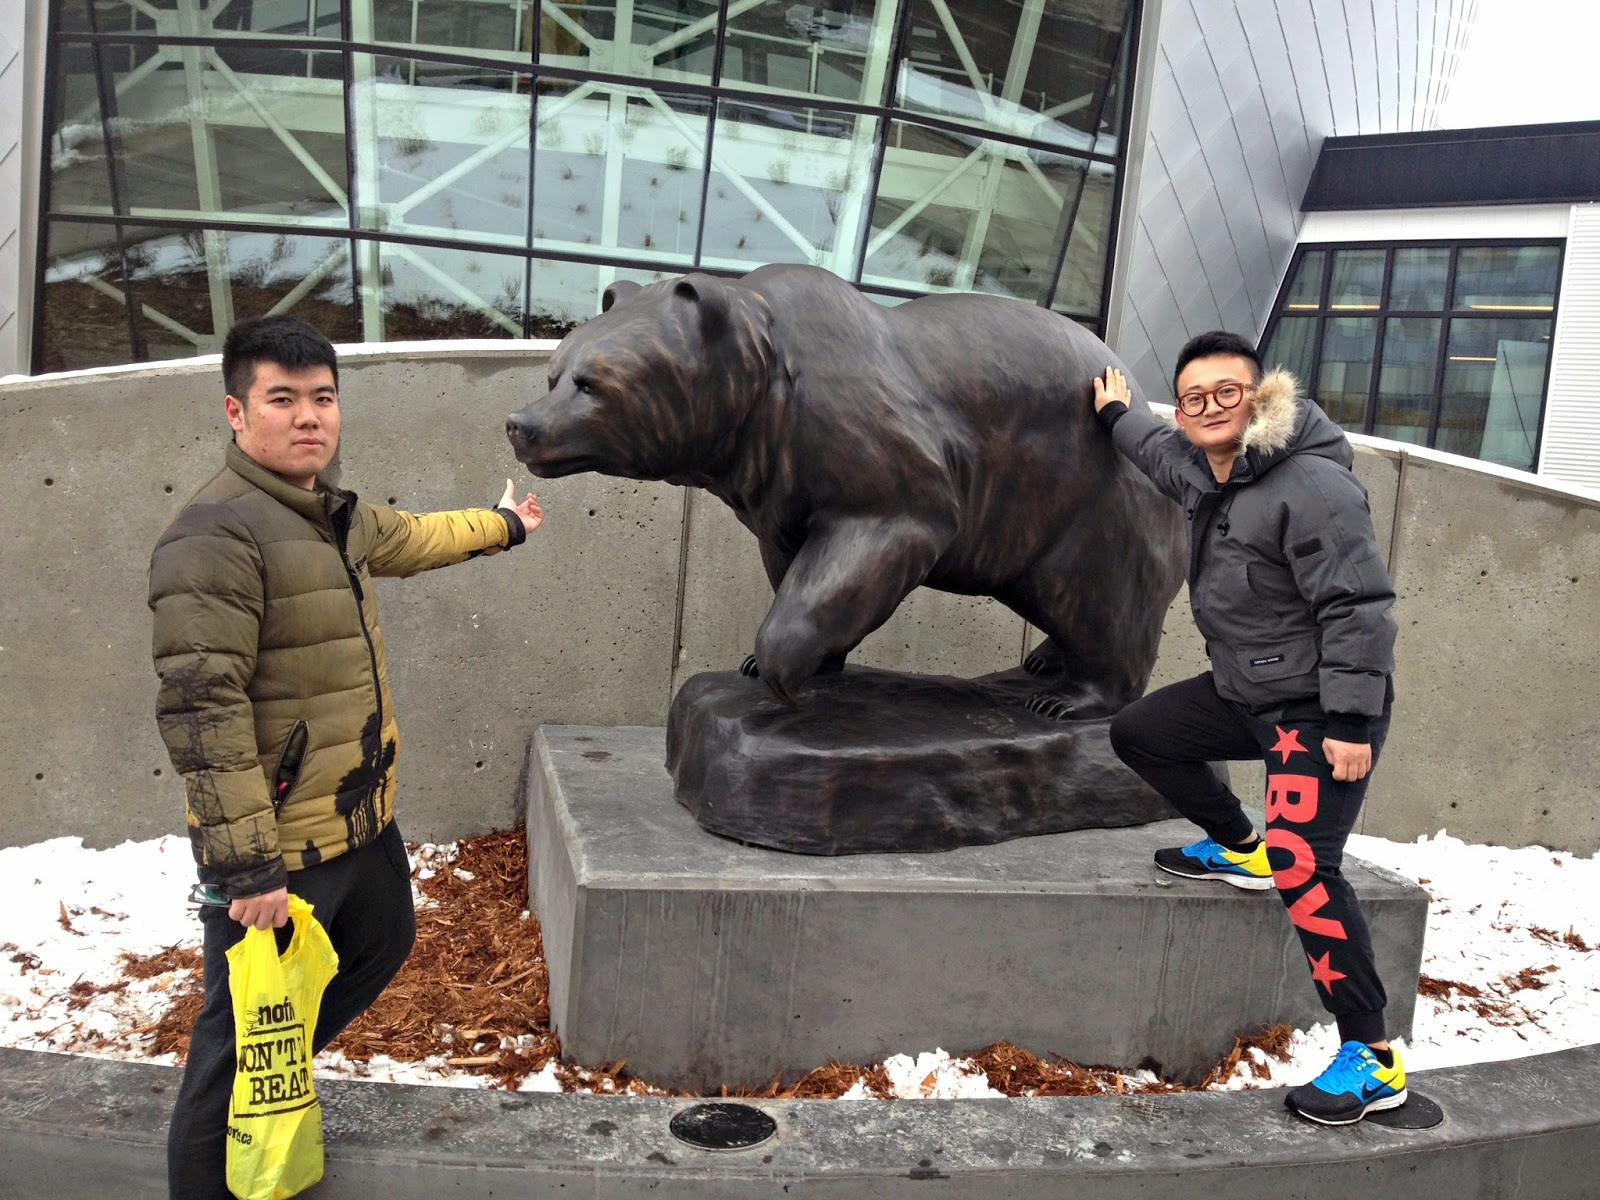 Getting Close to the UAlberta Alberta Bear